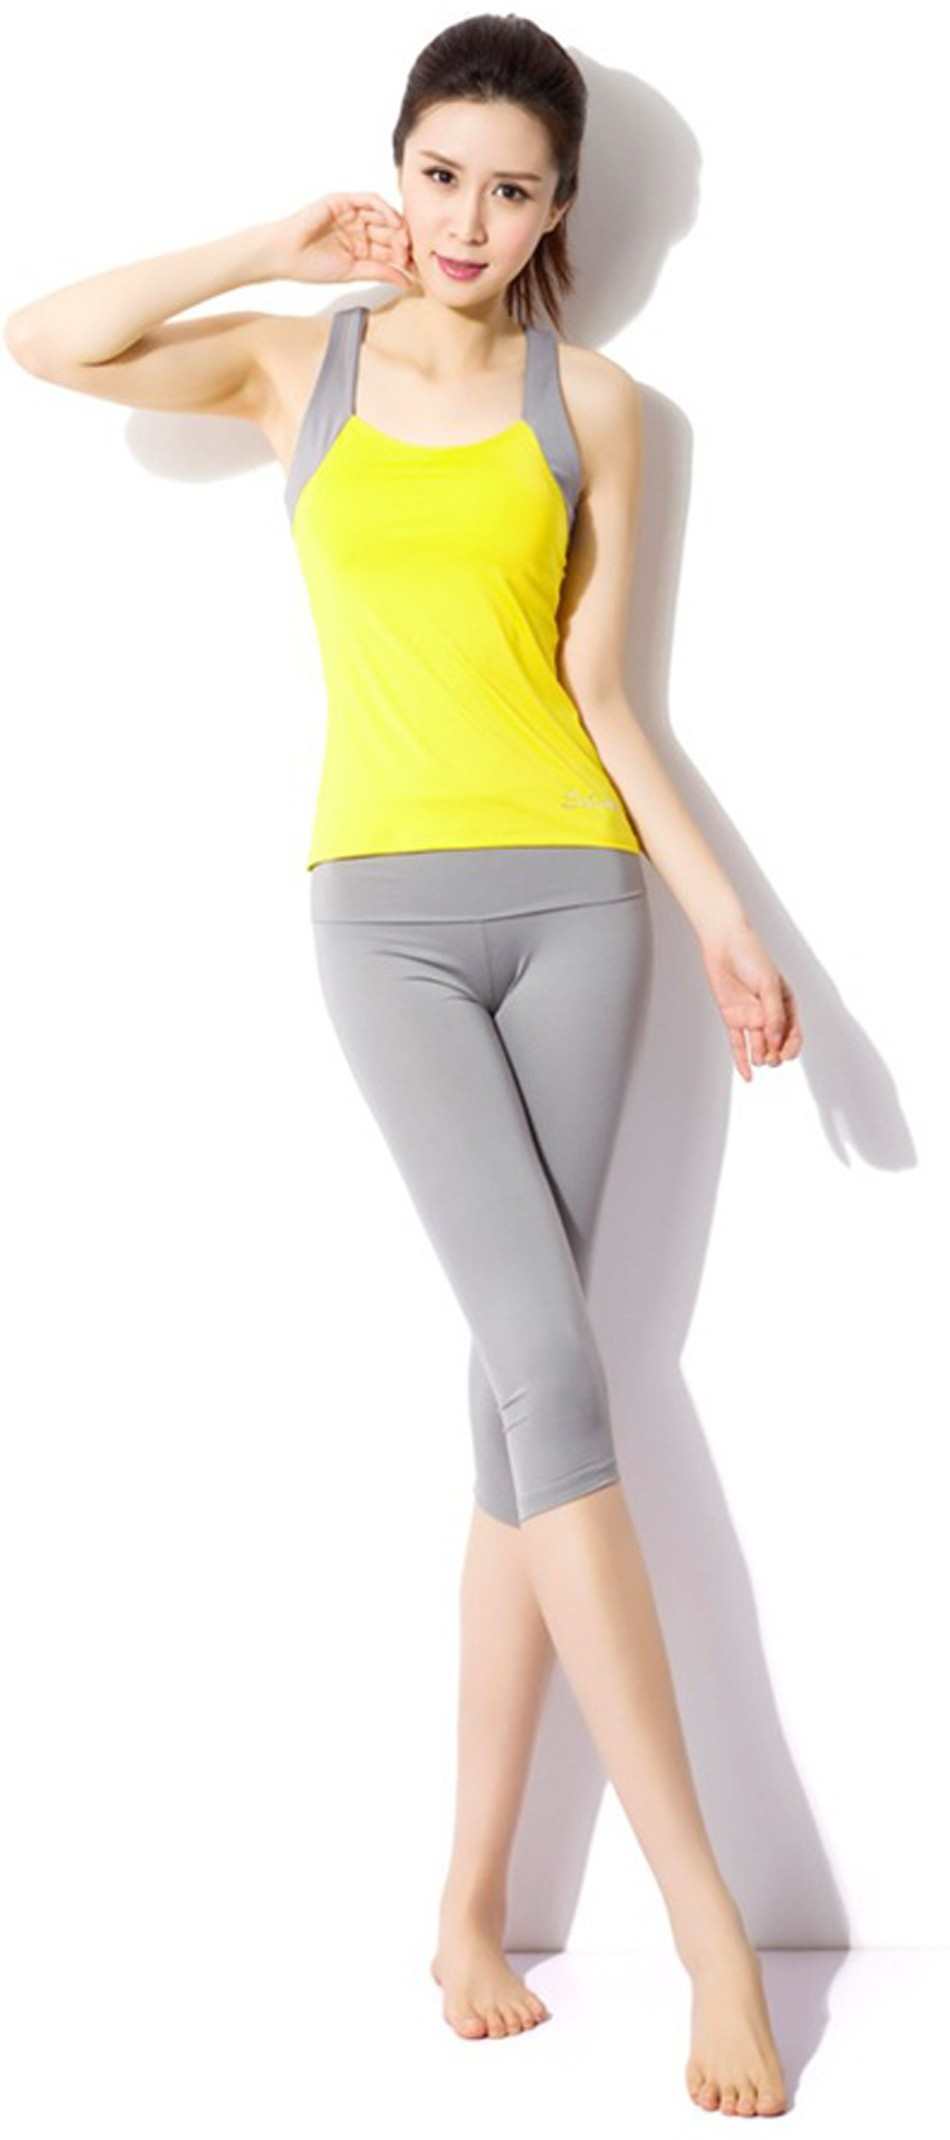 0e84ca4282a07 2015 quality yoga suit,slim cut with high elastic fabric,show thin and  comfortable.